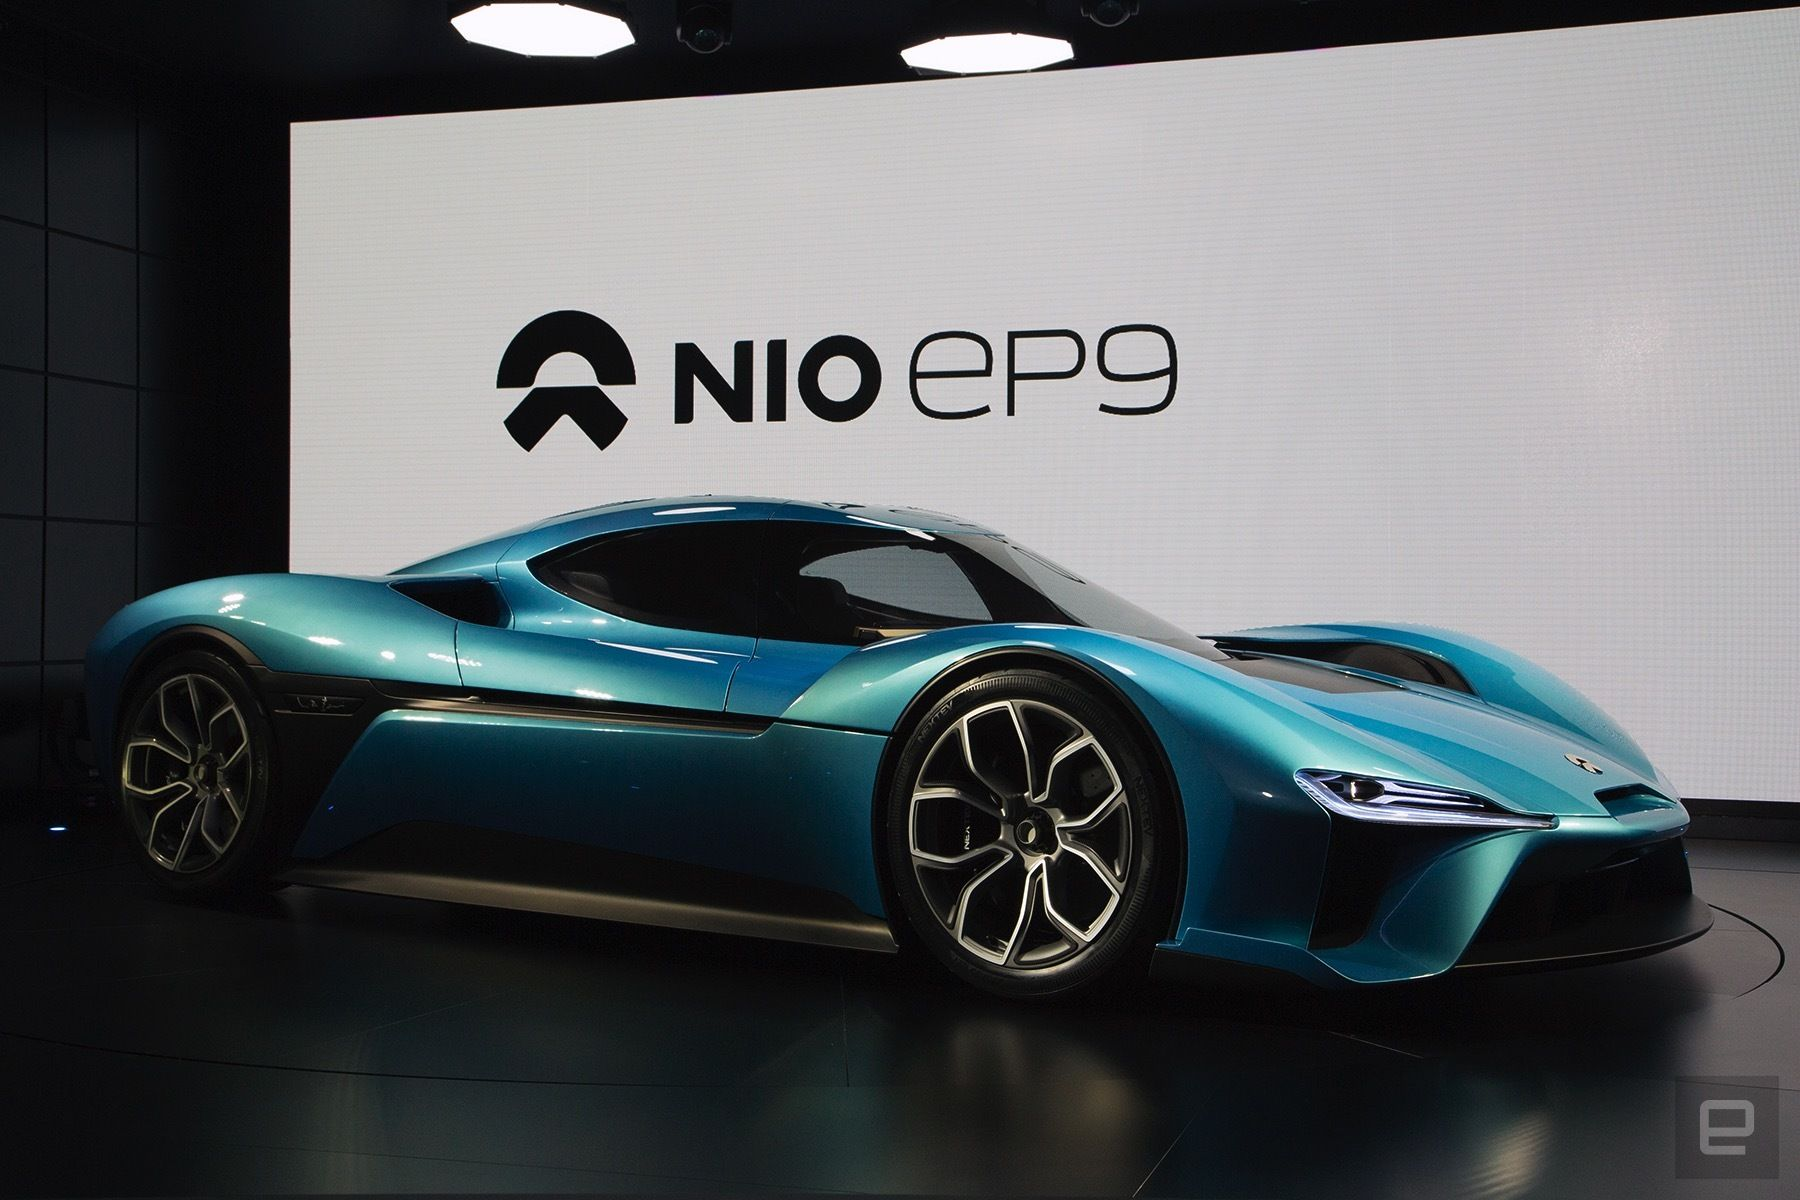 The Nio Ep9 Is The World S Fastest All Electric Supercar Super Cars All Electric Cars Futuristic Cars